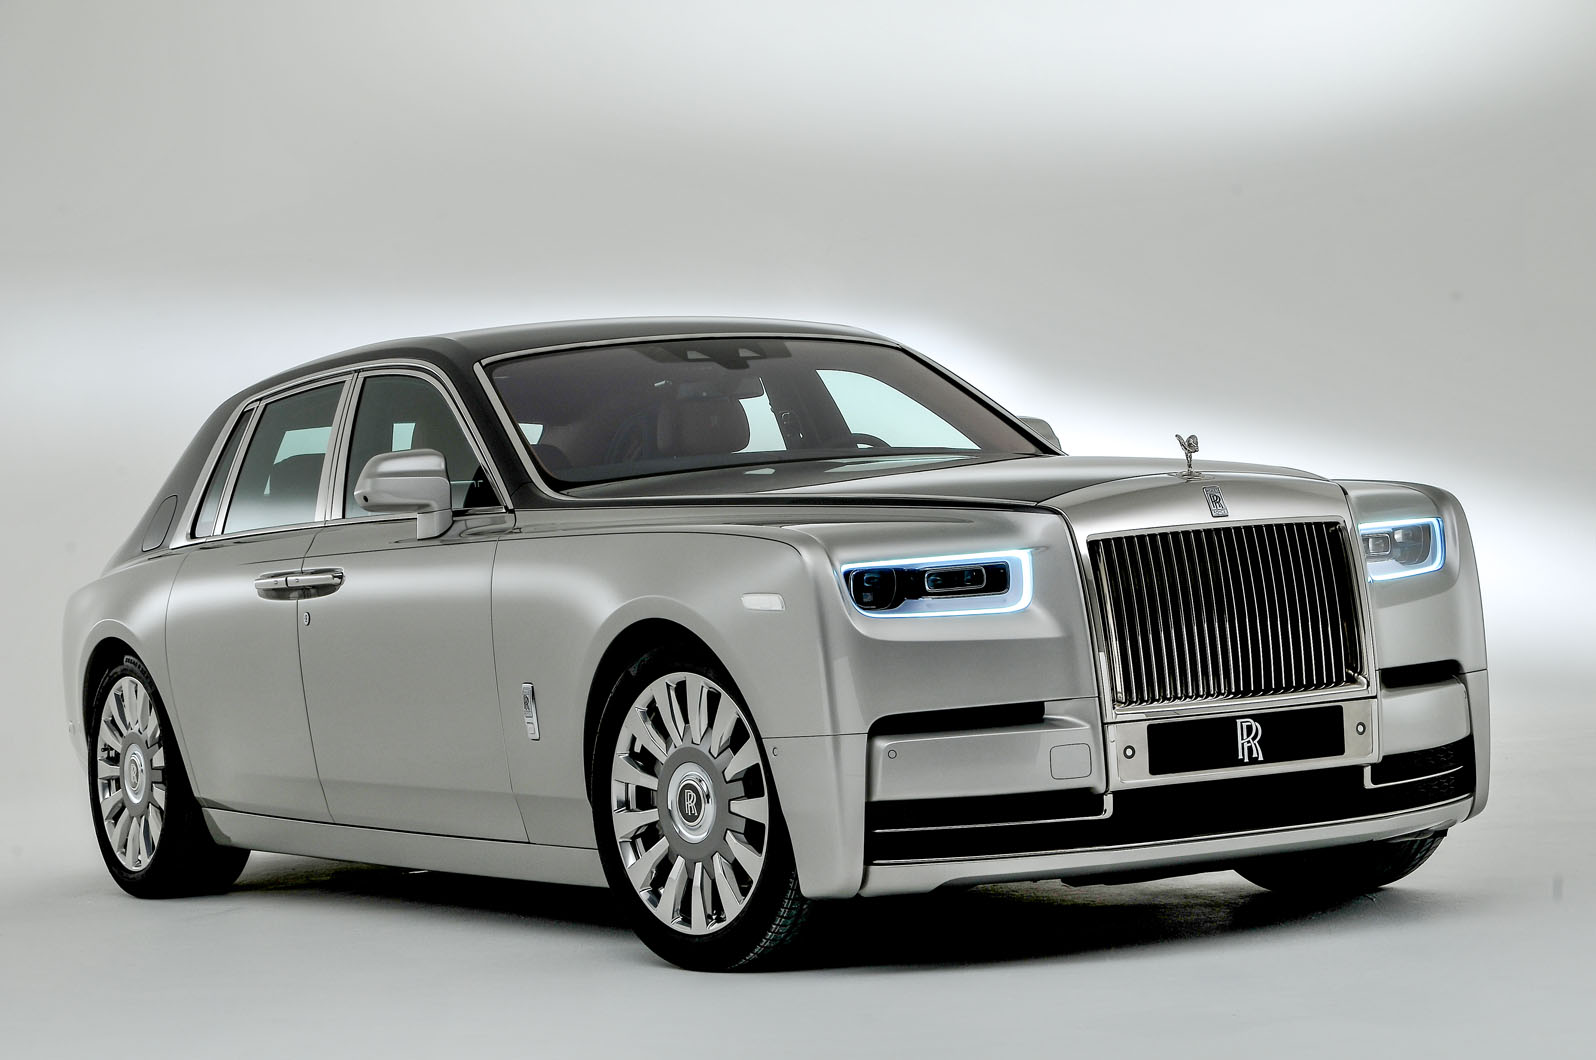 Rolls royce phantom photo - 6